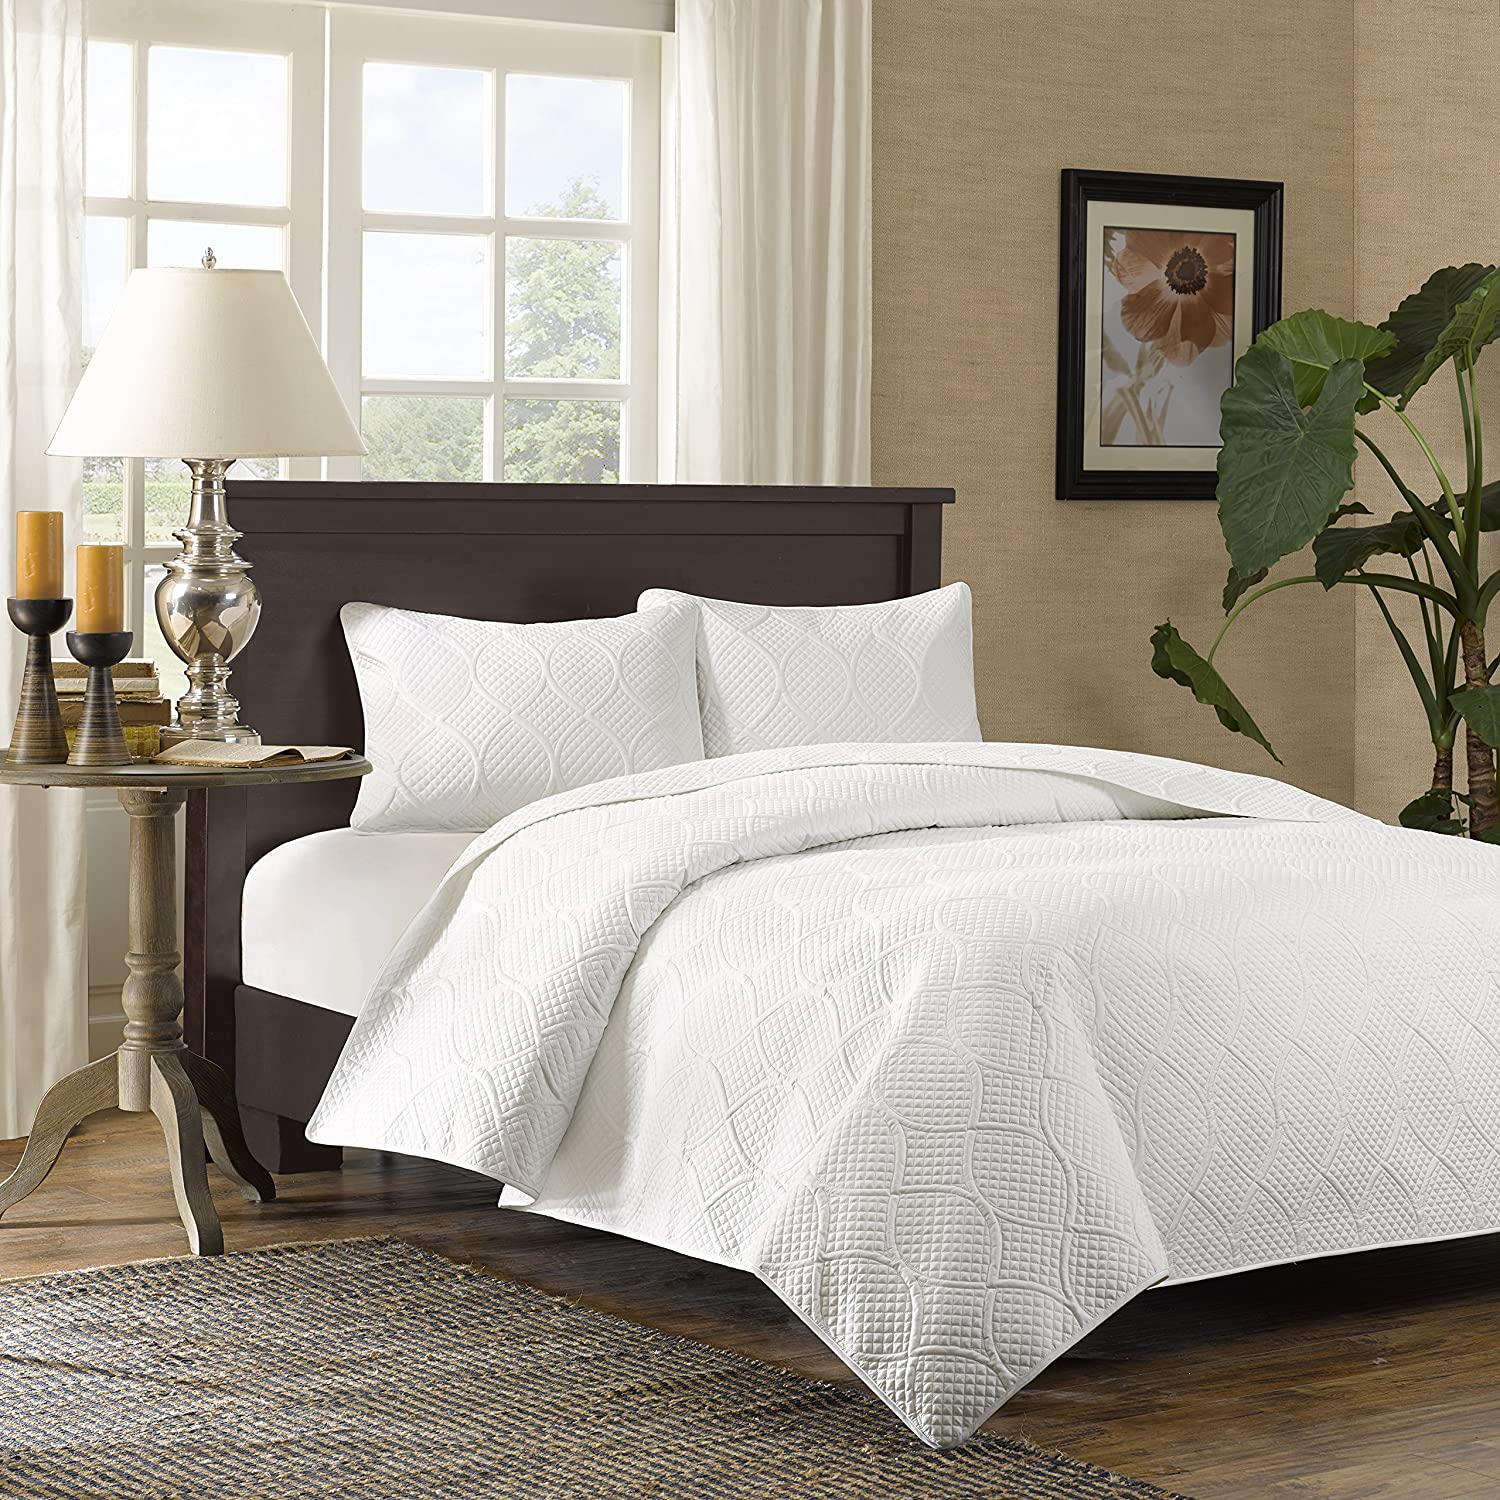 amazoncom madison park corrine 3 piece coverlet set king white home u0026 kitchen - California King Bed Sheets